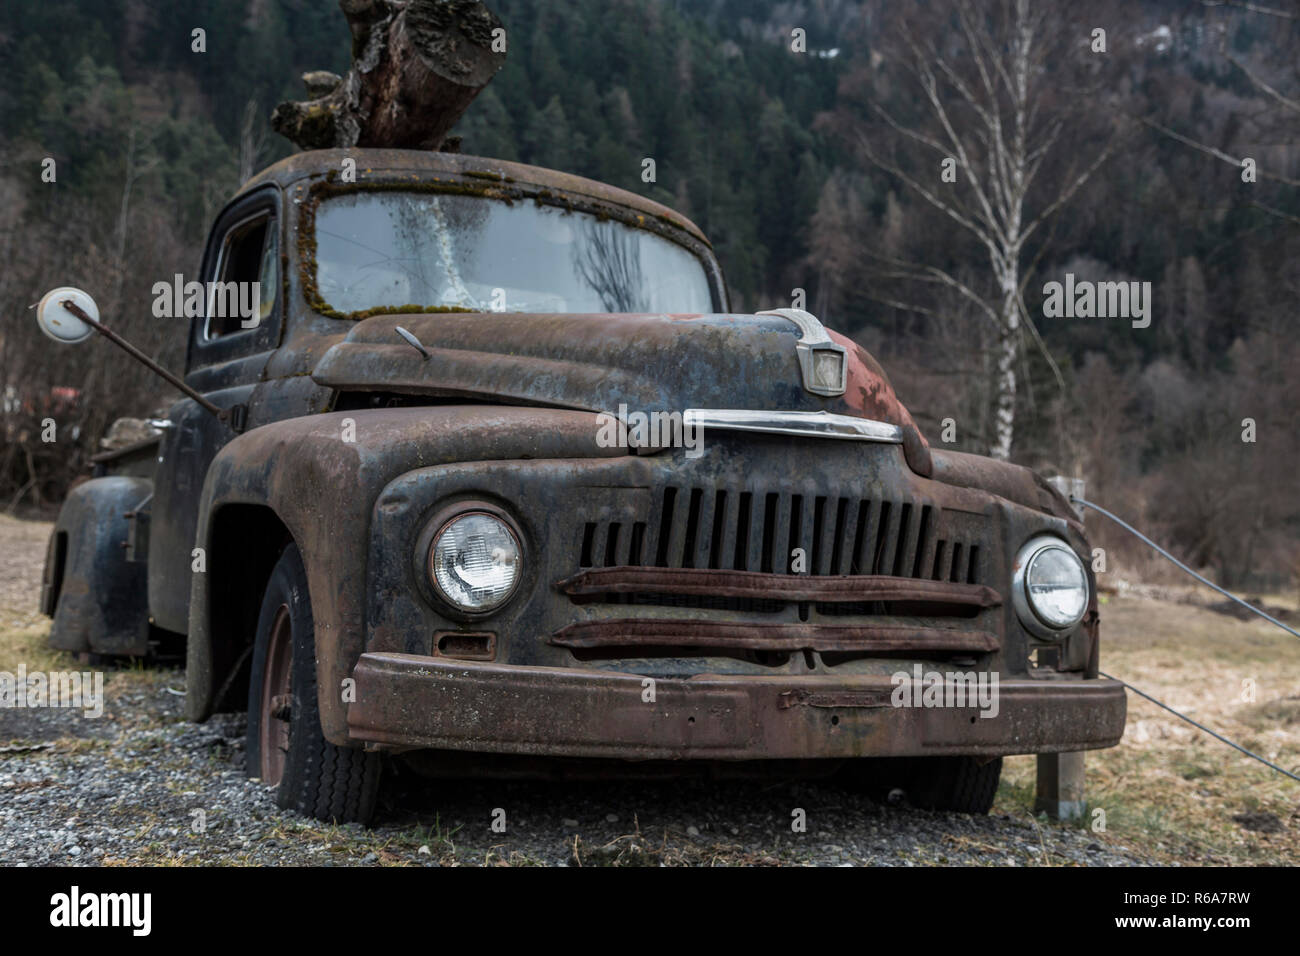 Disused Oldtimer Awakened Feelings Of Nostalgia Stock Photo